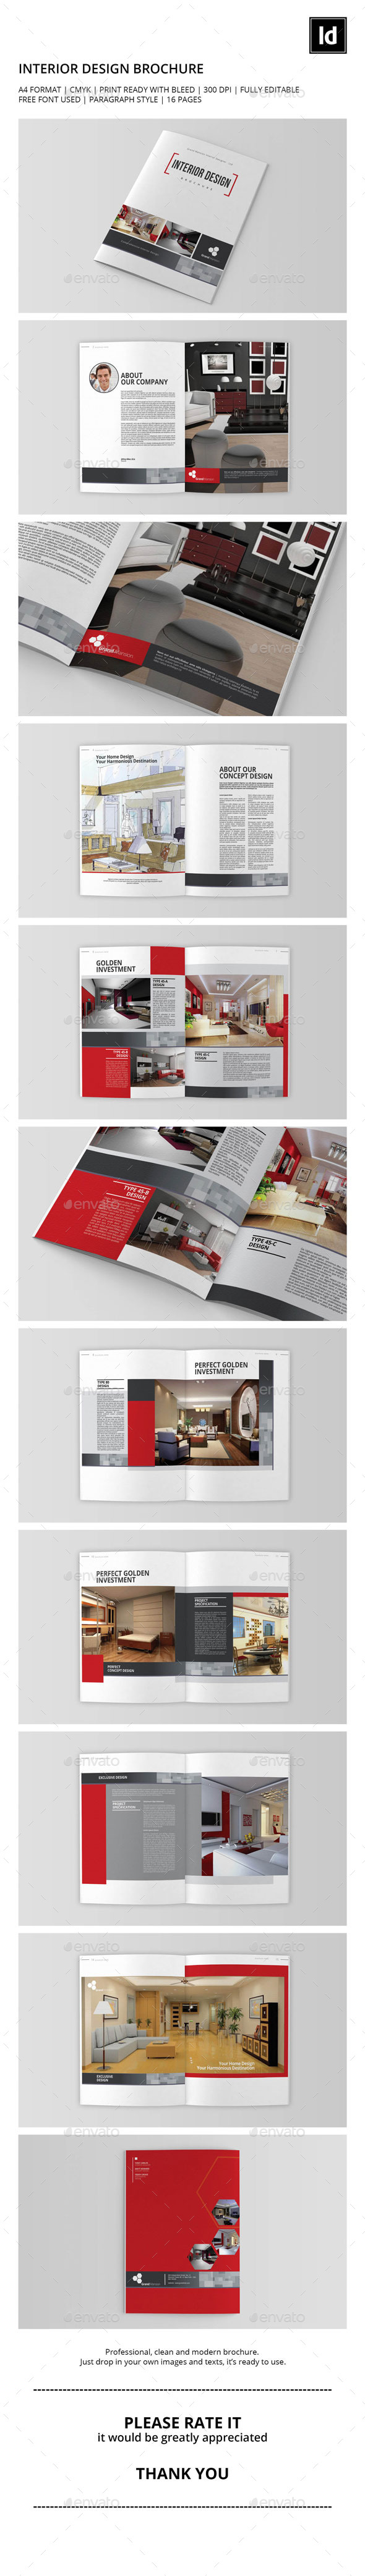 Interior Design Brochure/Catalog Vol.1 - Catalogs Brochures